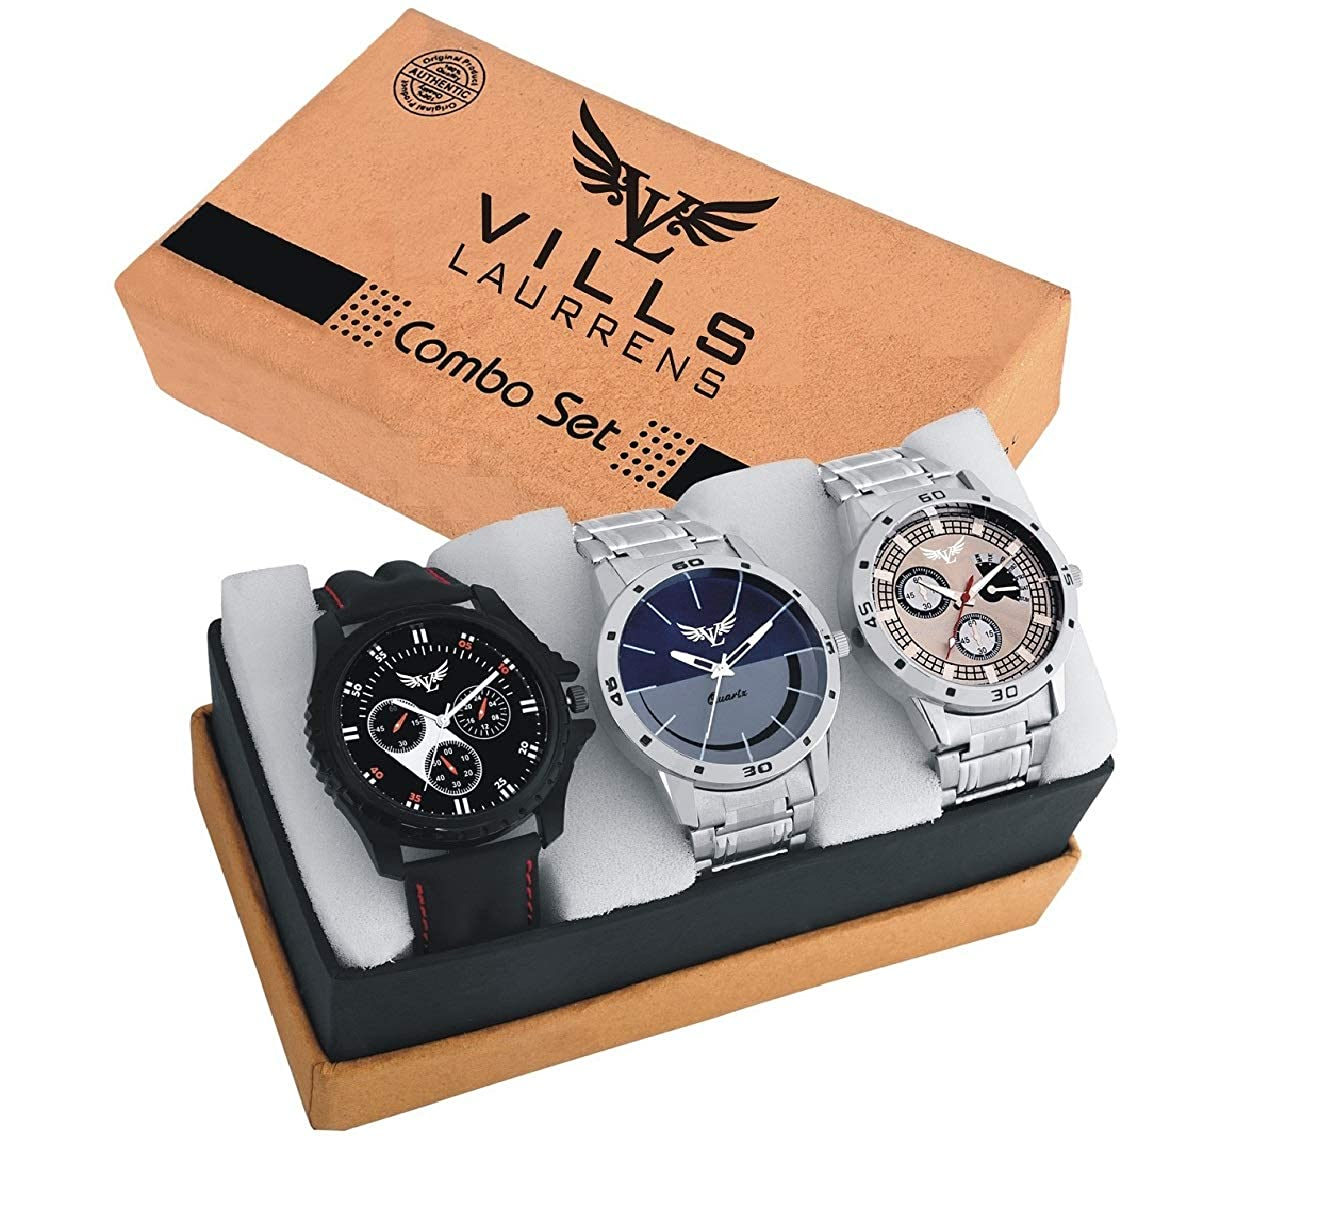 Vills Laurrens Analogue Multicolor Dial Combo Of 3 Men's &